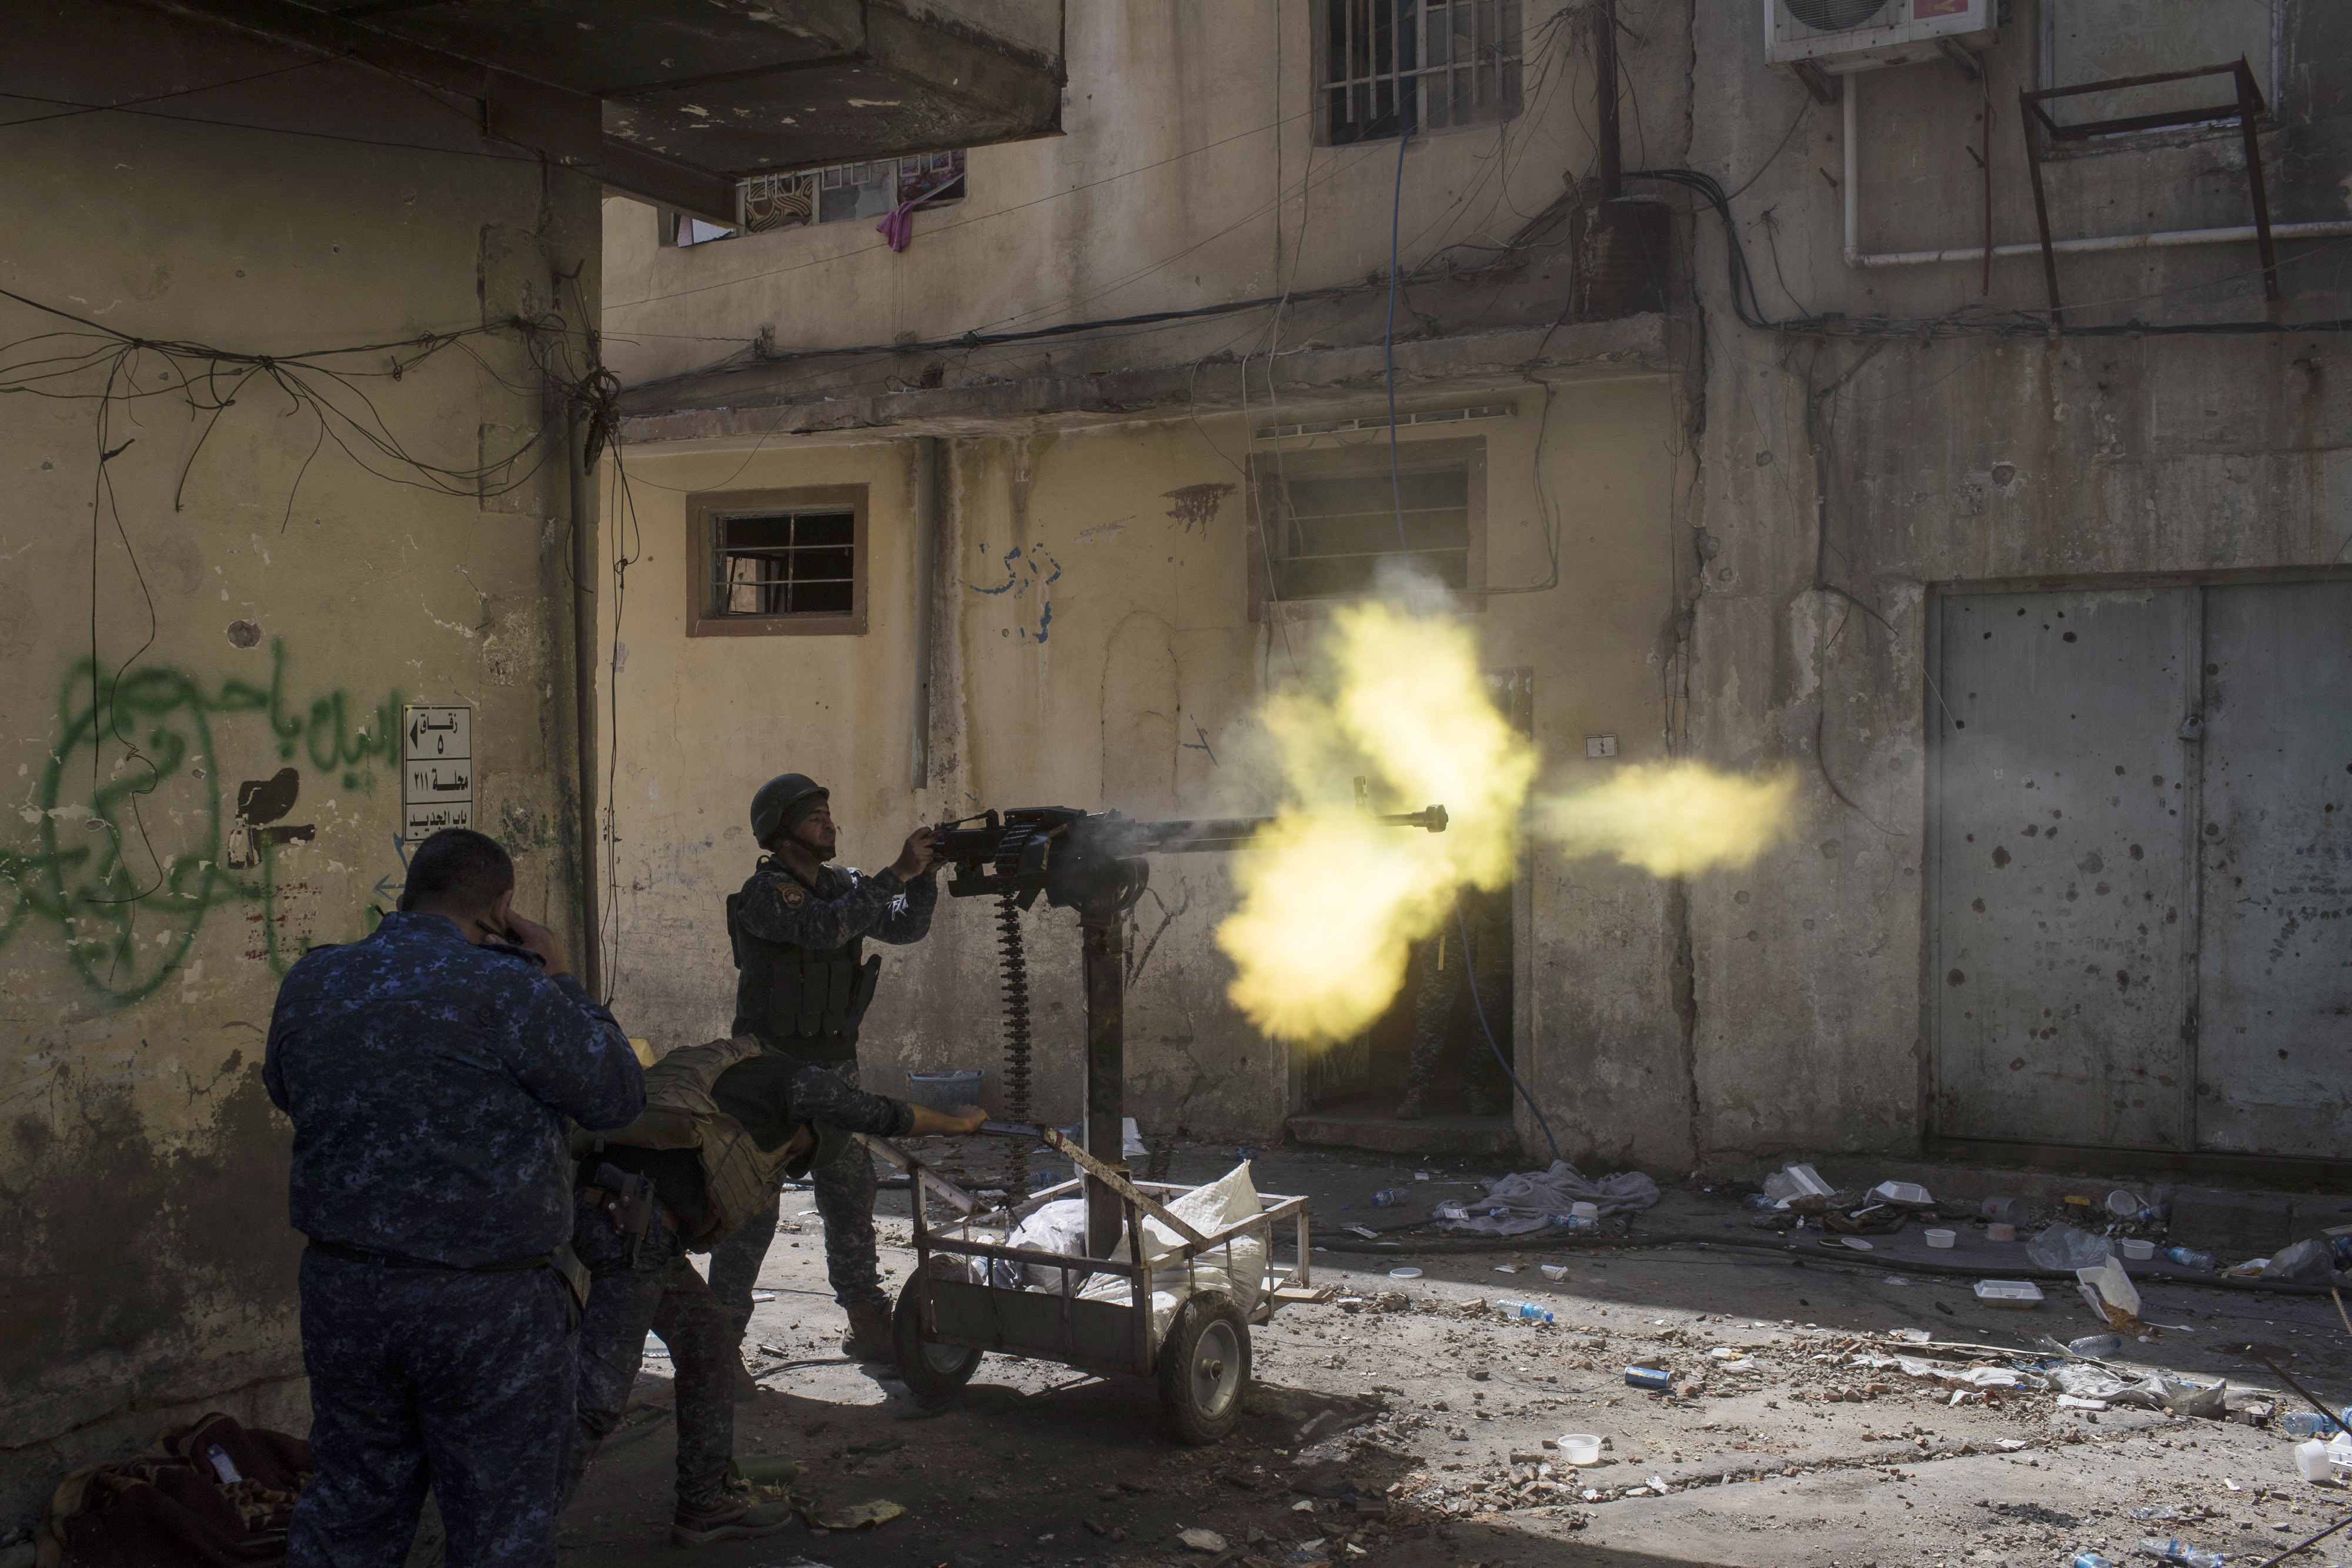 Federal policemen fire towards Islamic State positions in the old city during fighting on the western side of Mosul, Iraq, Thursday, March 30, 2017. (AP Photo/Felipe Dana)